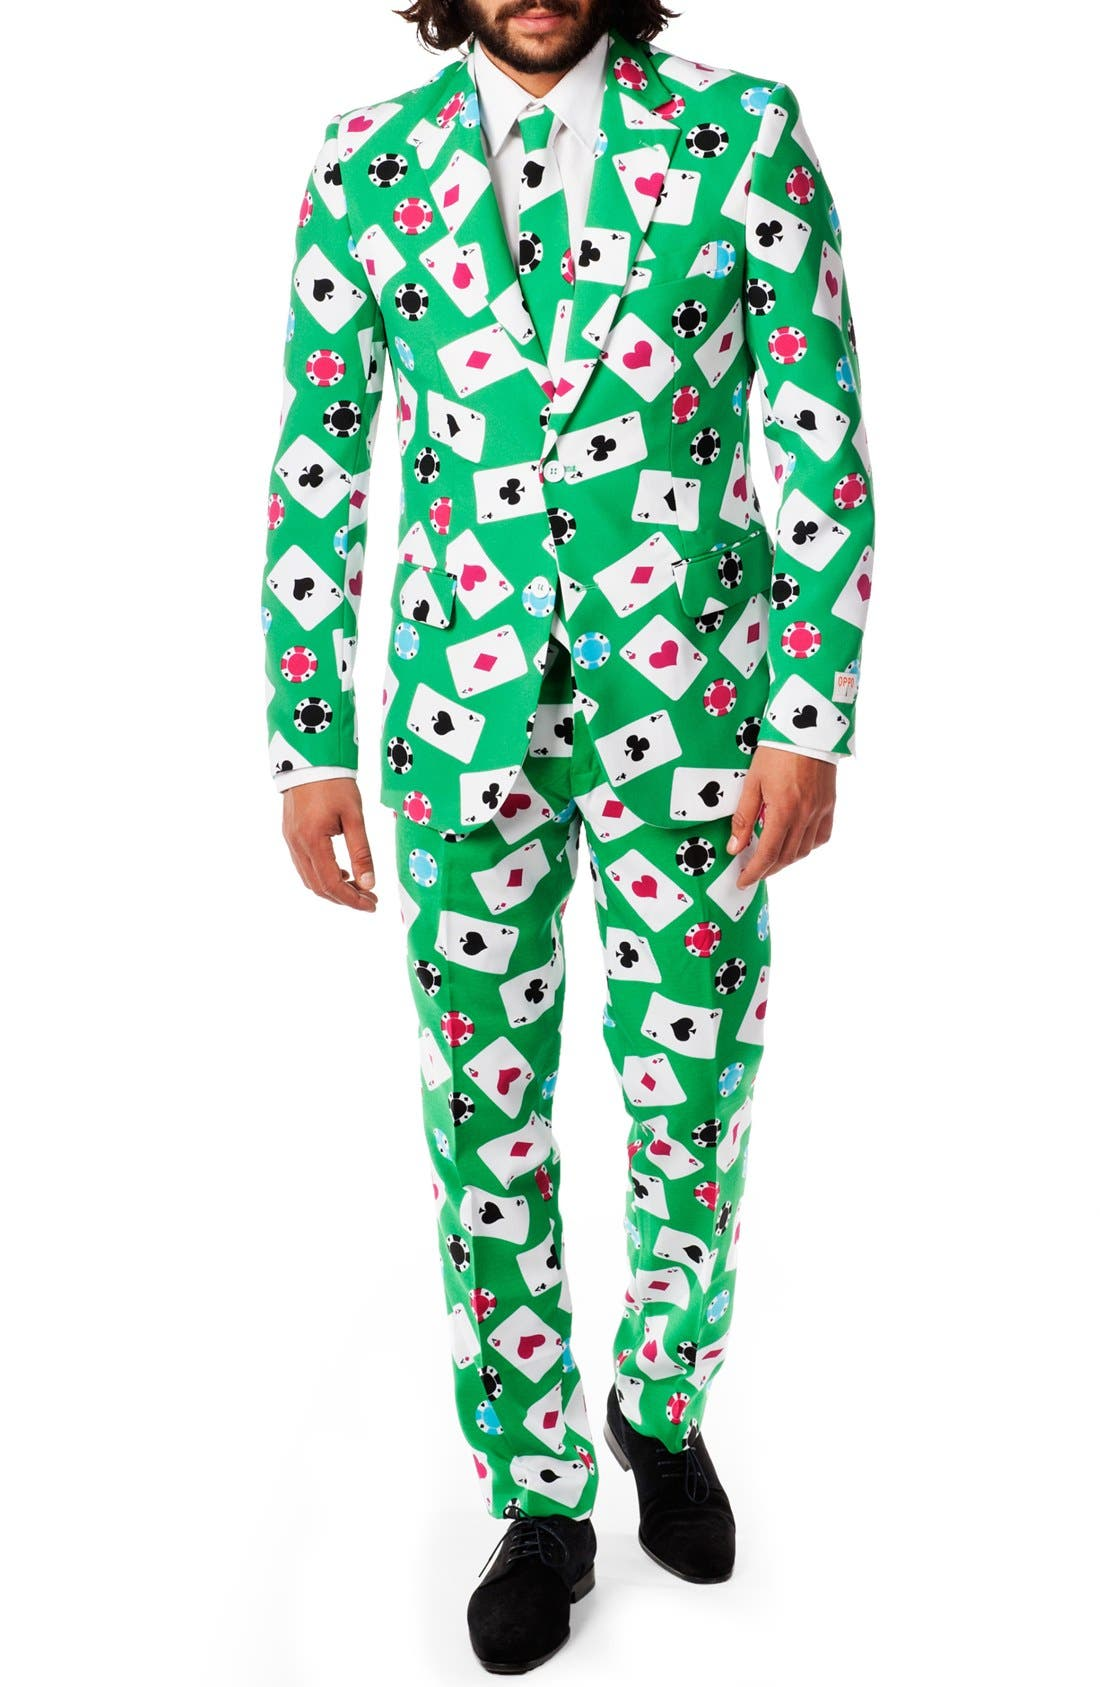 'Poker Face' Trim Fit Suit with Tie,                         Main,                         color, Green